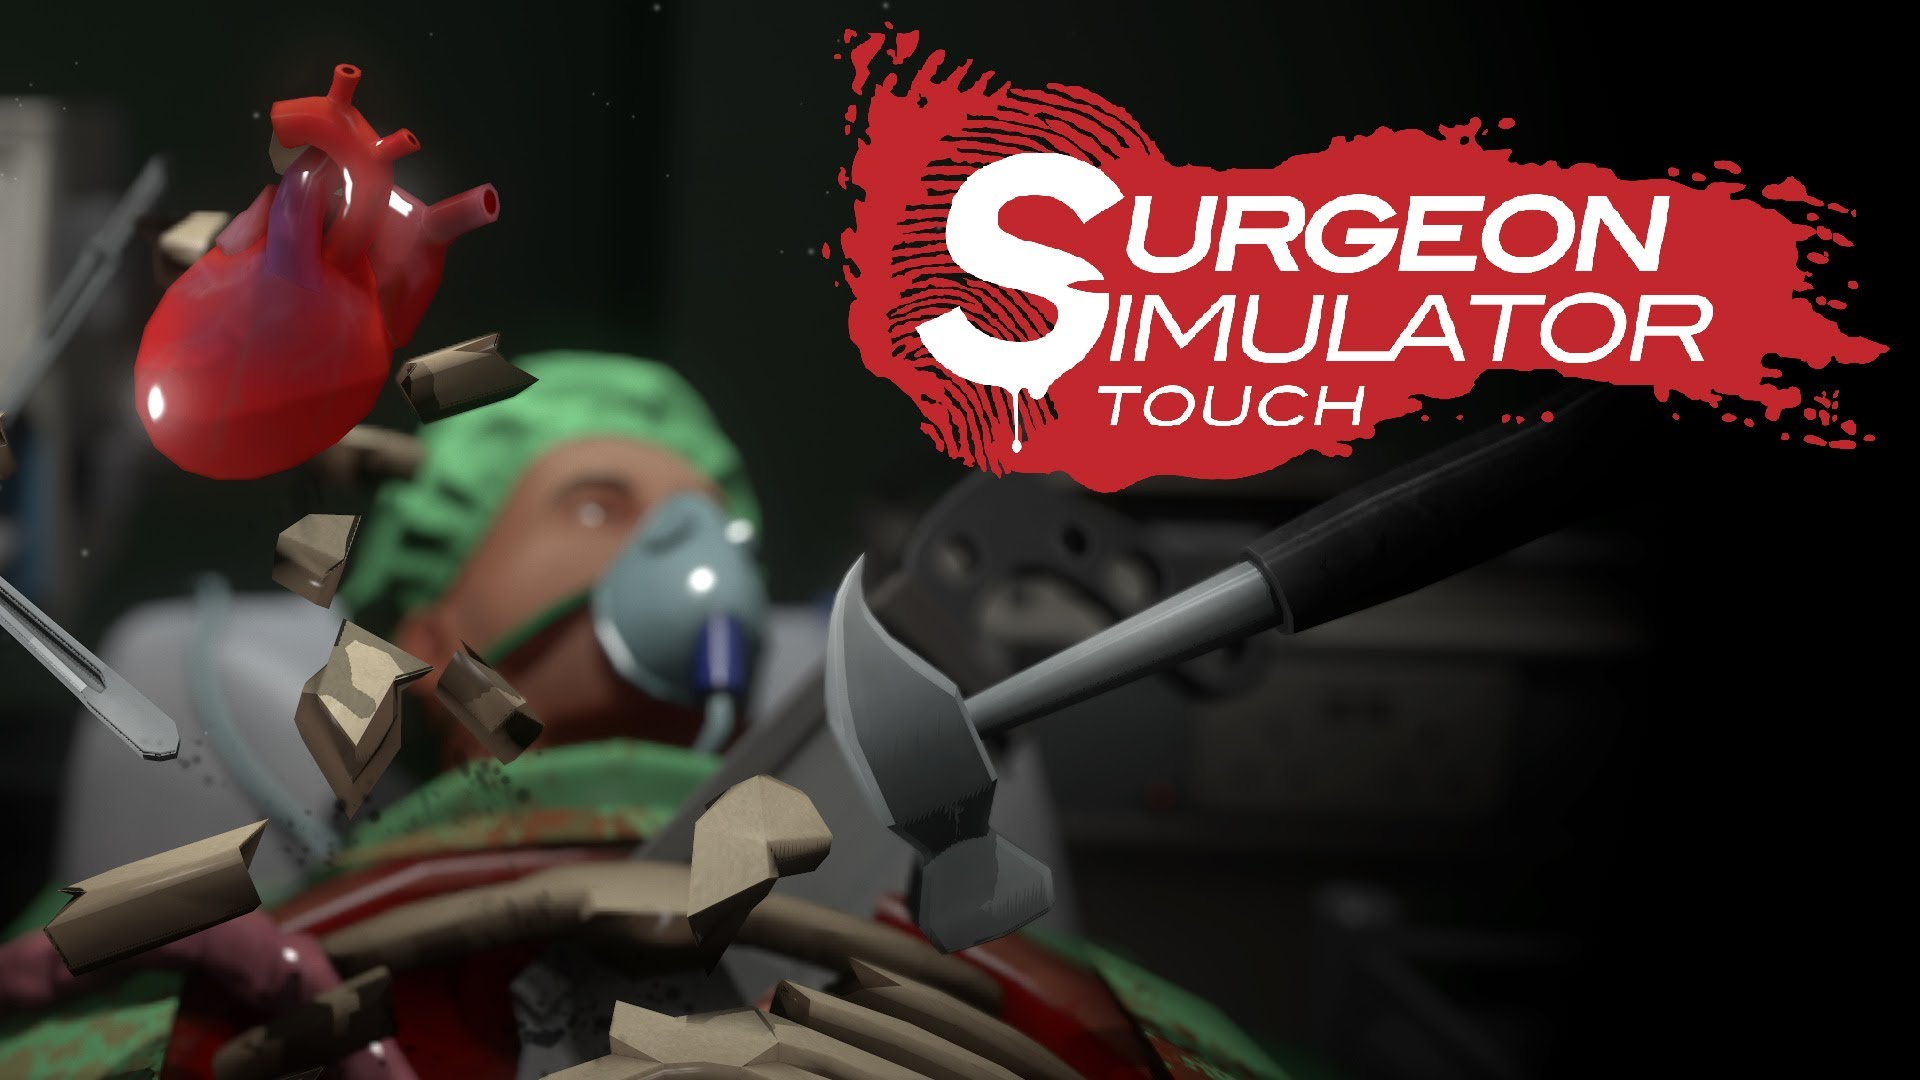 surgeon simulator touch para gente con est243mago